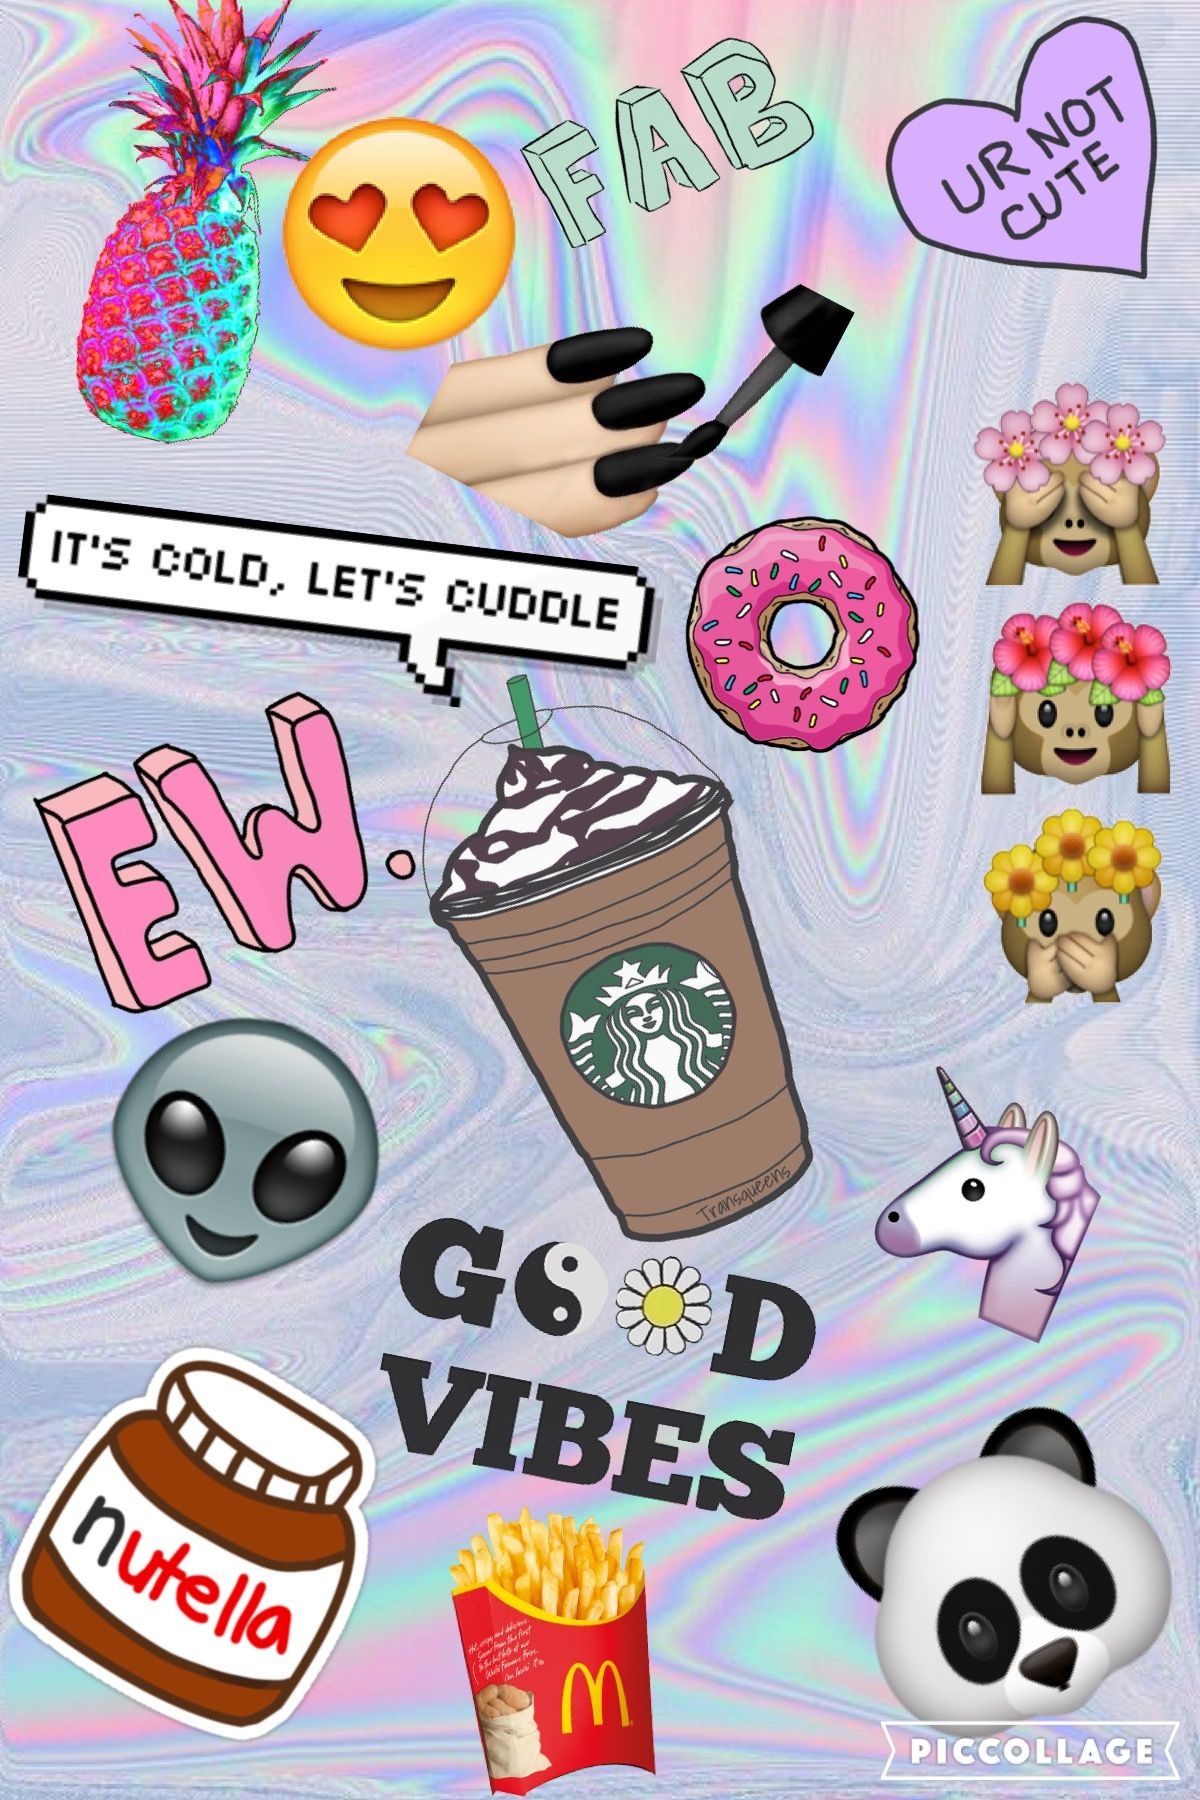 wallpaper tumblrwallpaper starbucks hipster iphone